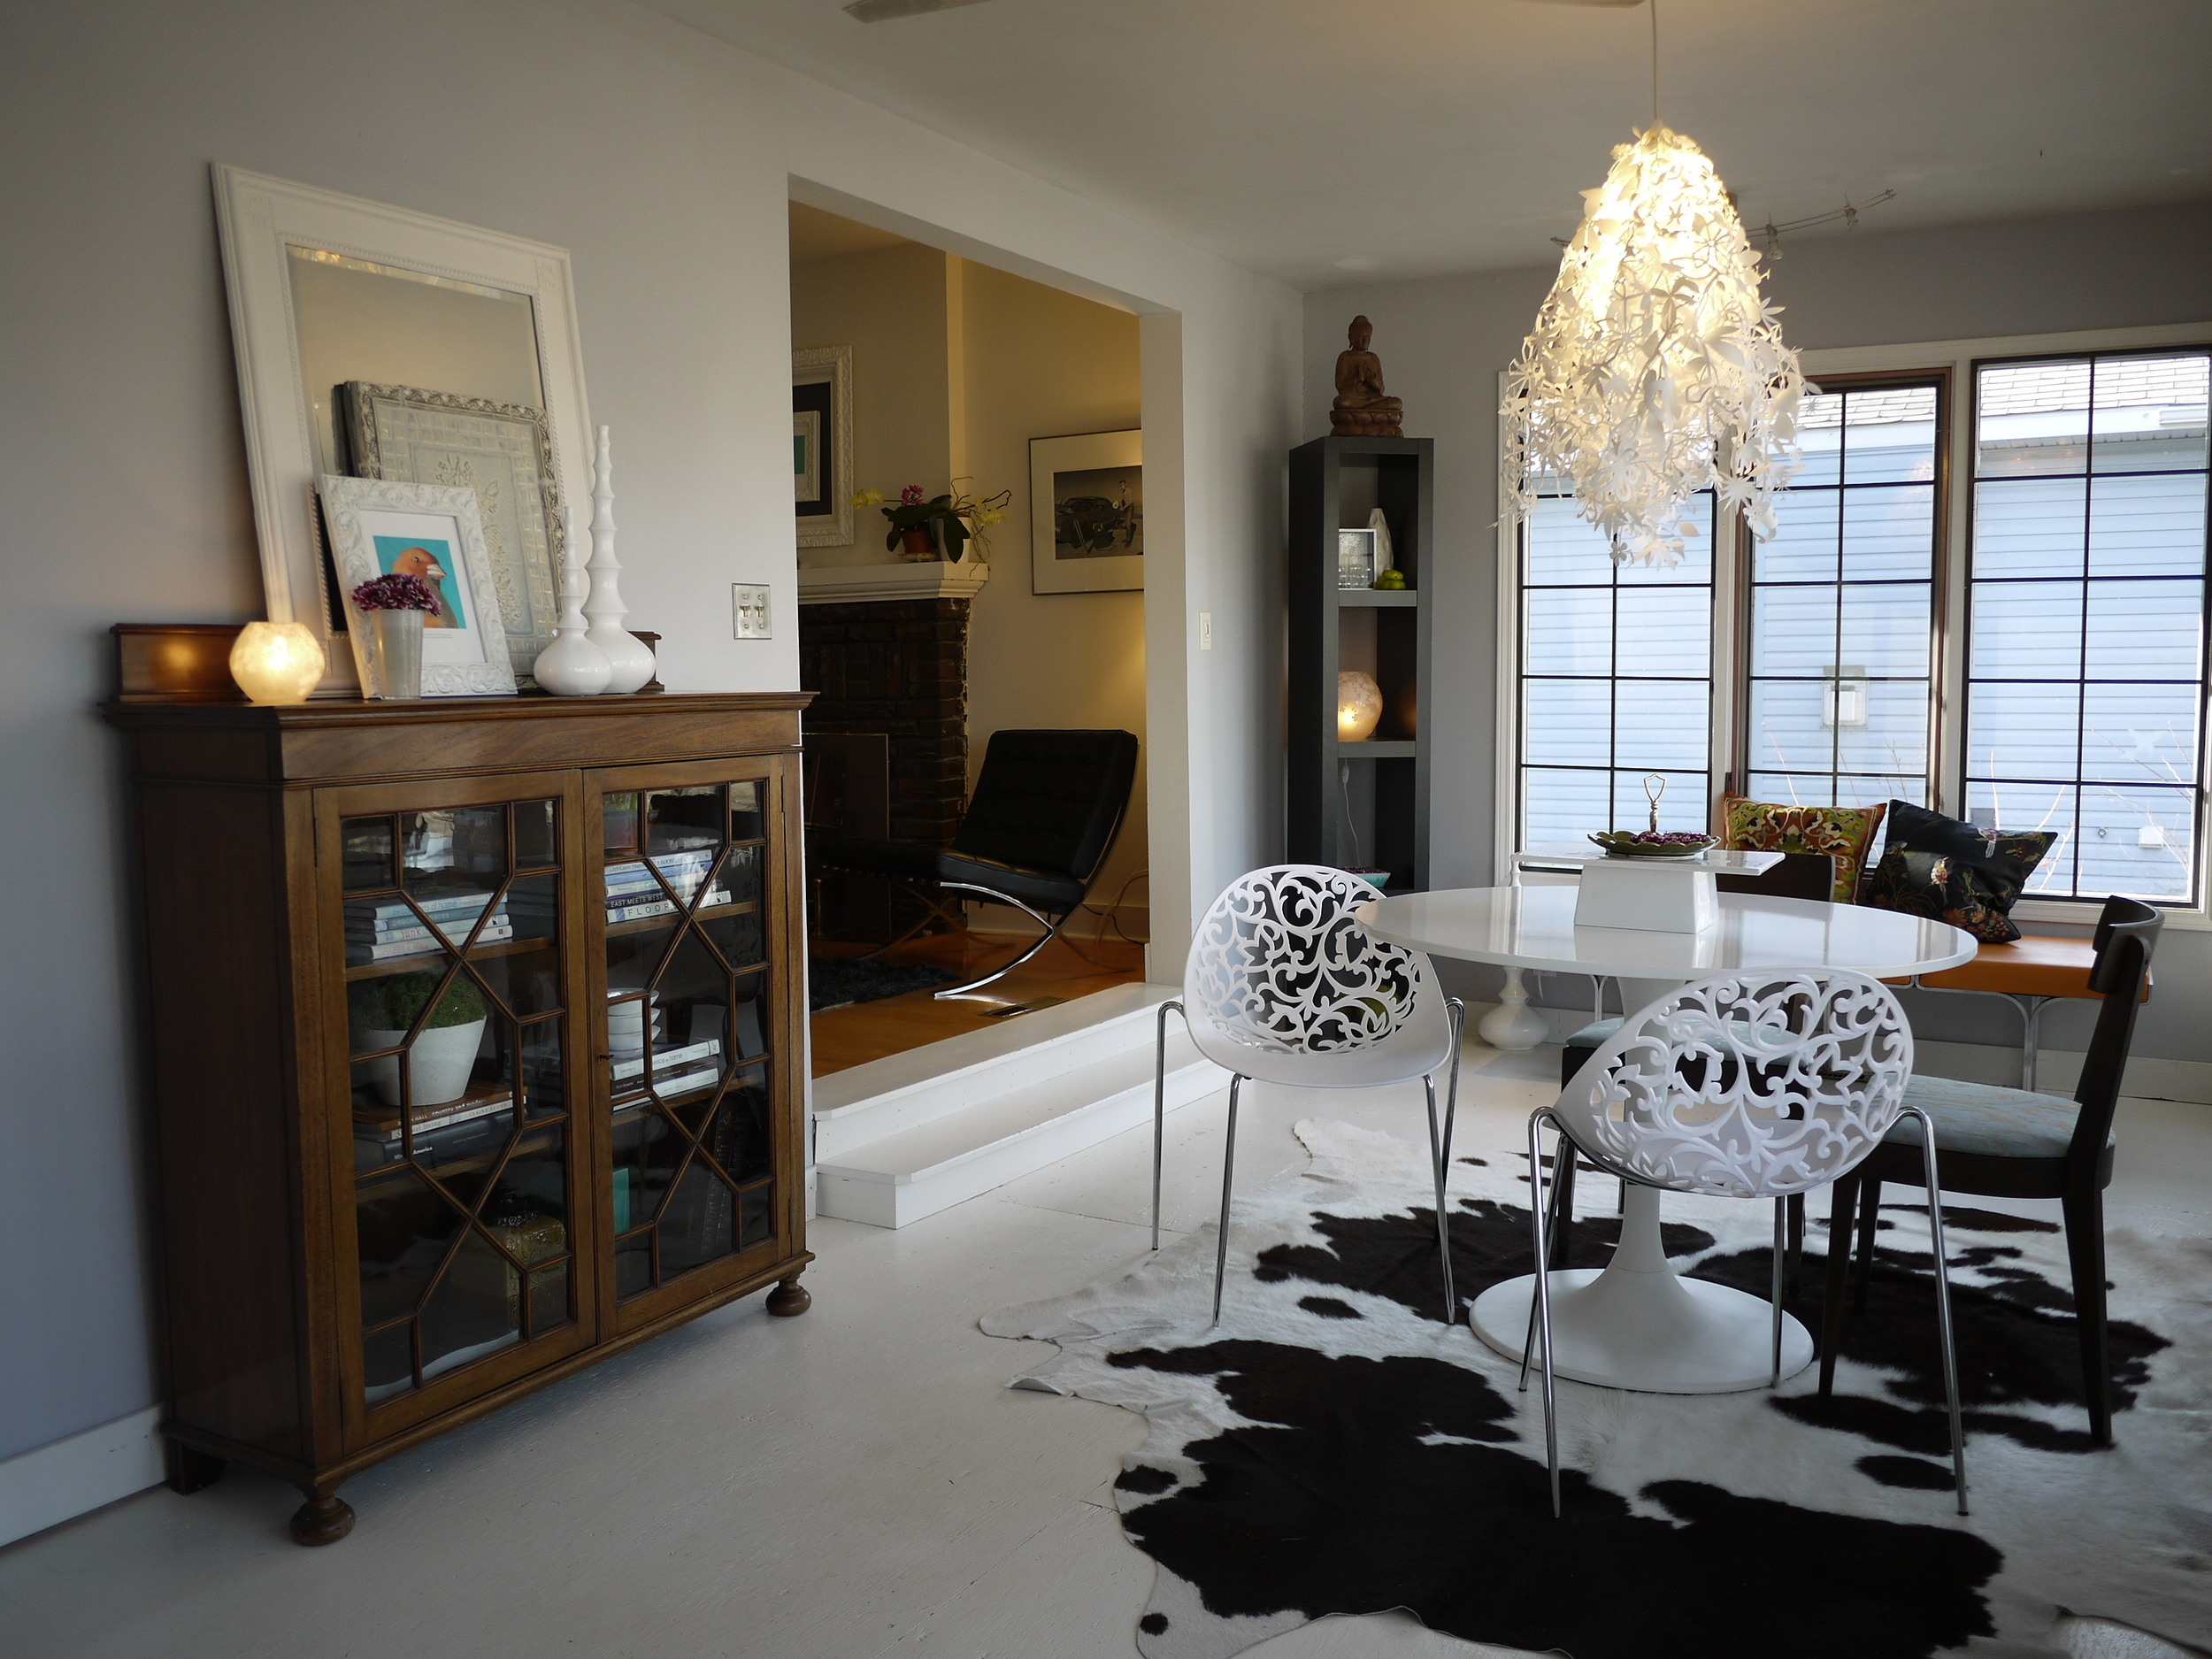 Midsummer Light Chandelier, tulip table, Kare dining chairs, cow hide rug and Chippendale bookcase.